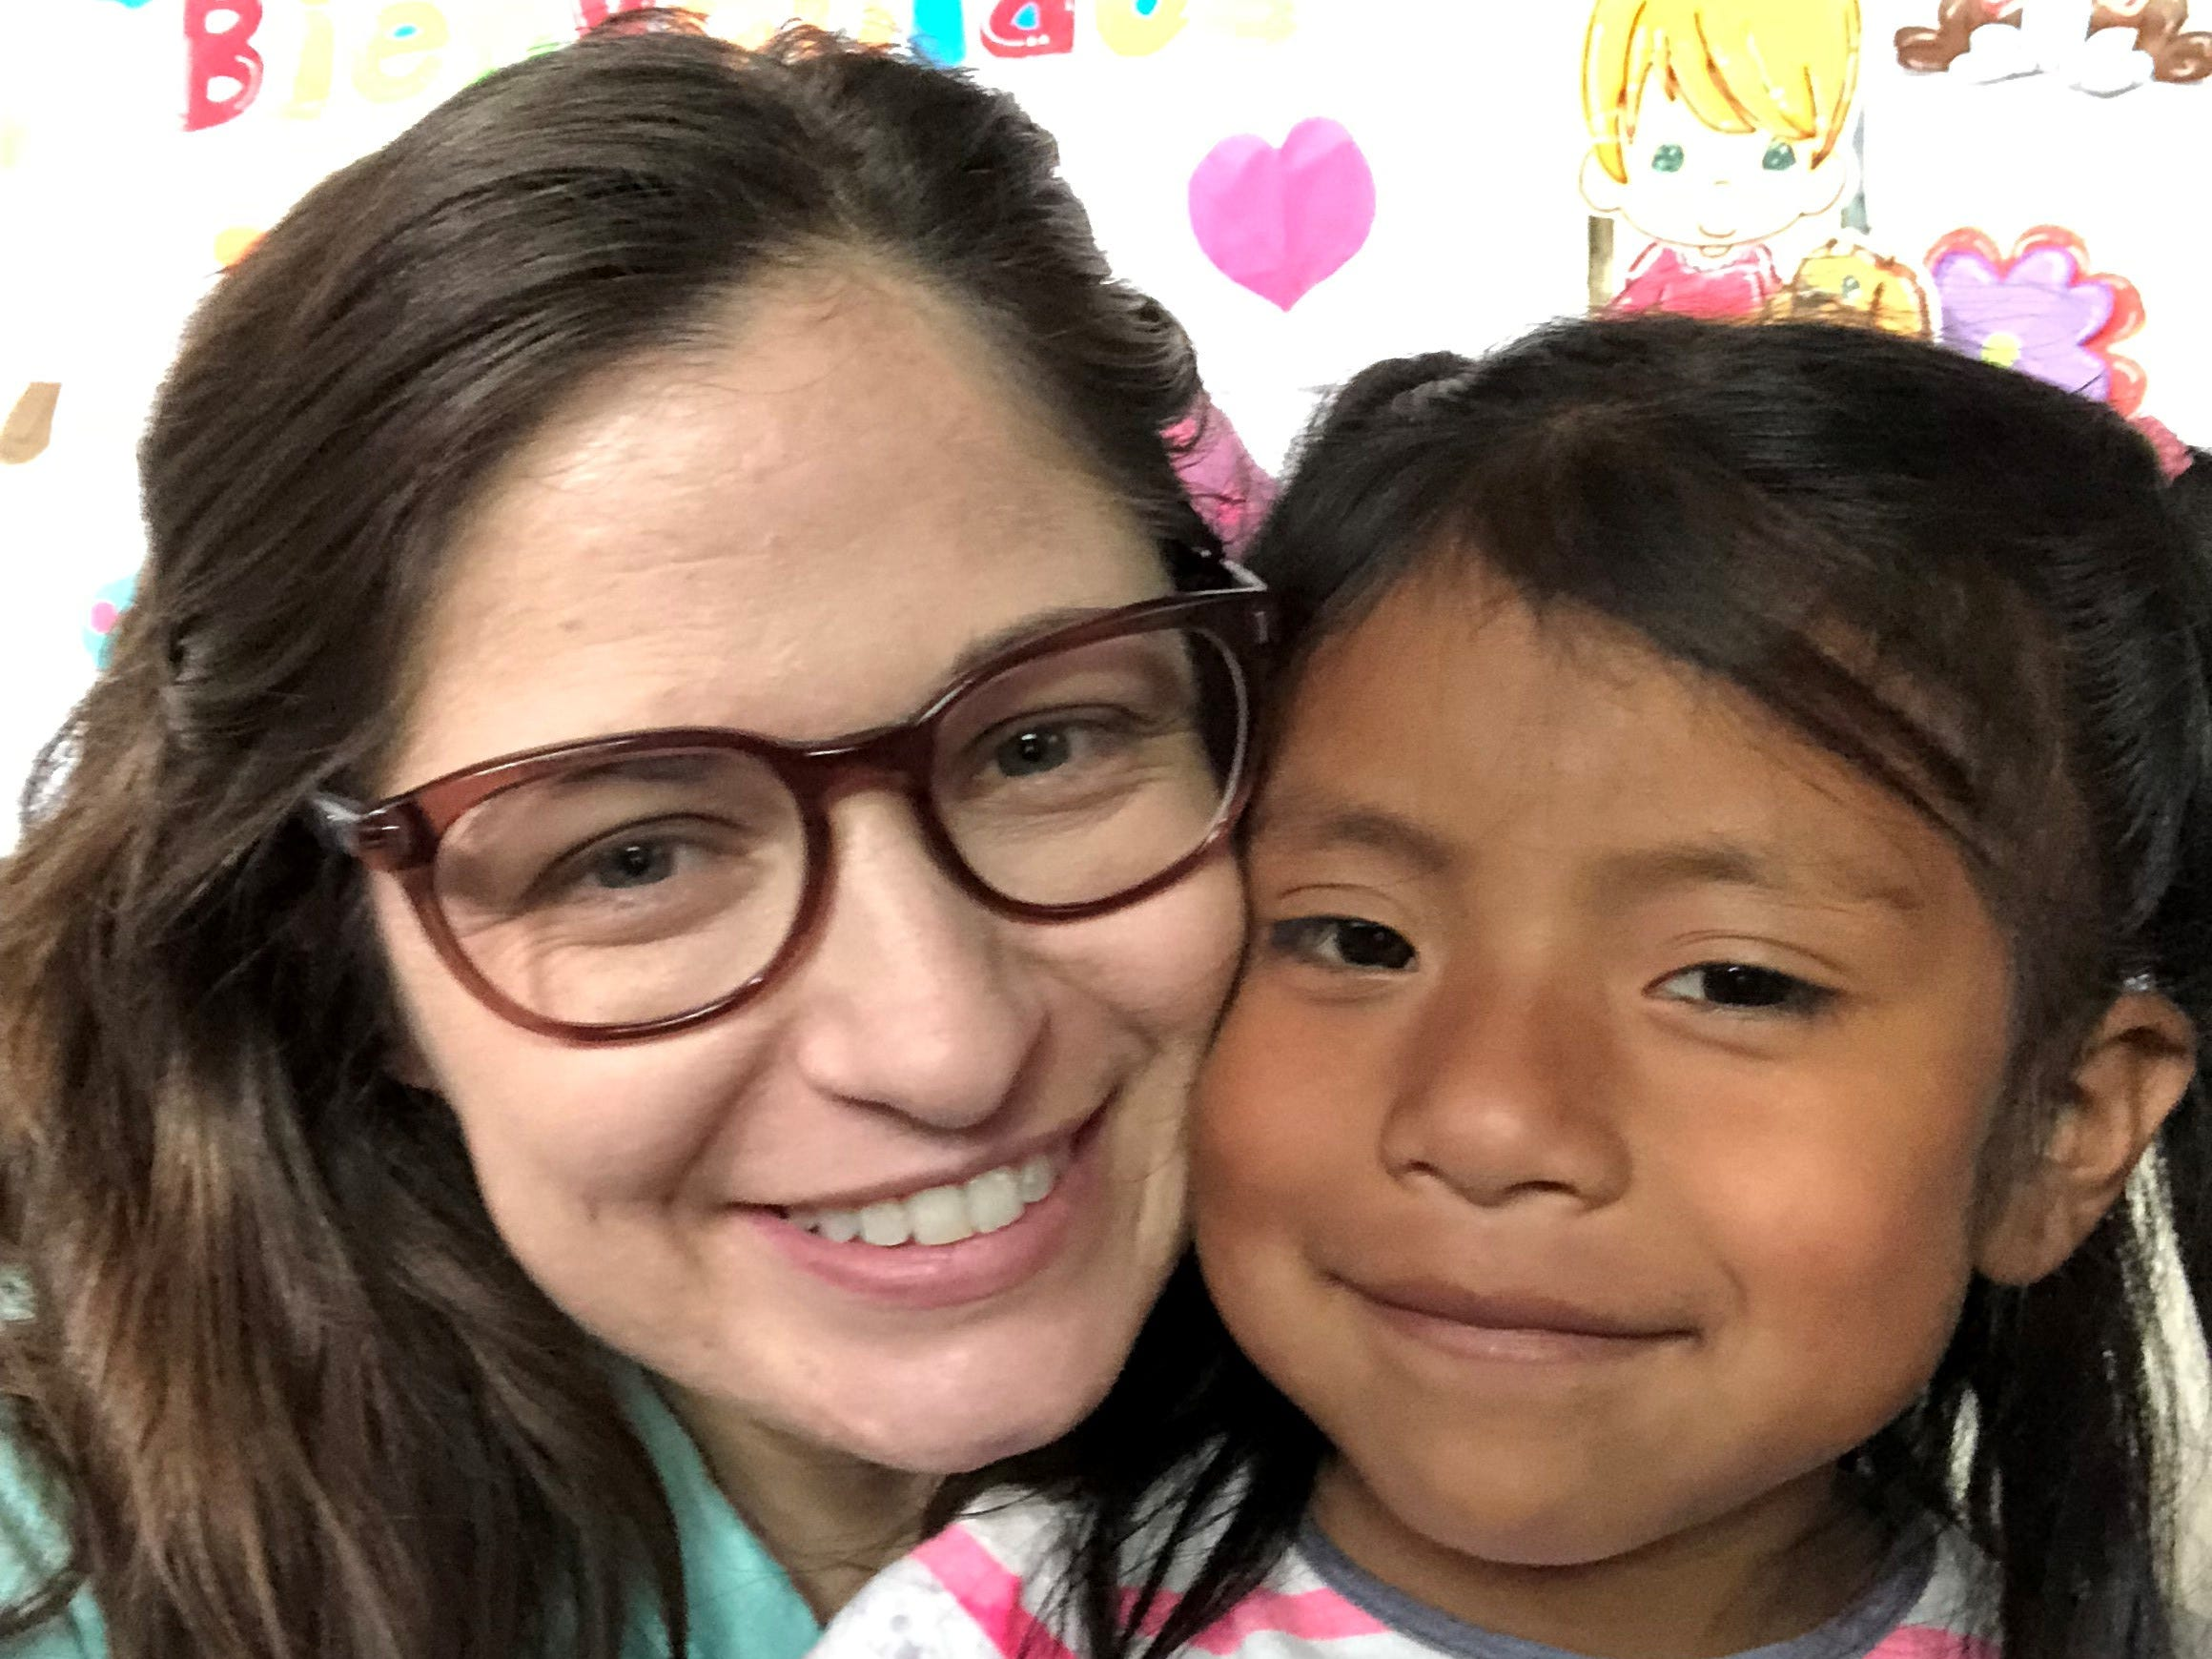 Reporter Leigh Guidry snaps a selfie with a student at an elementary school in Chicoyoj I, a community in rural Guatemala.